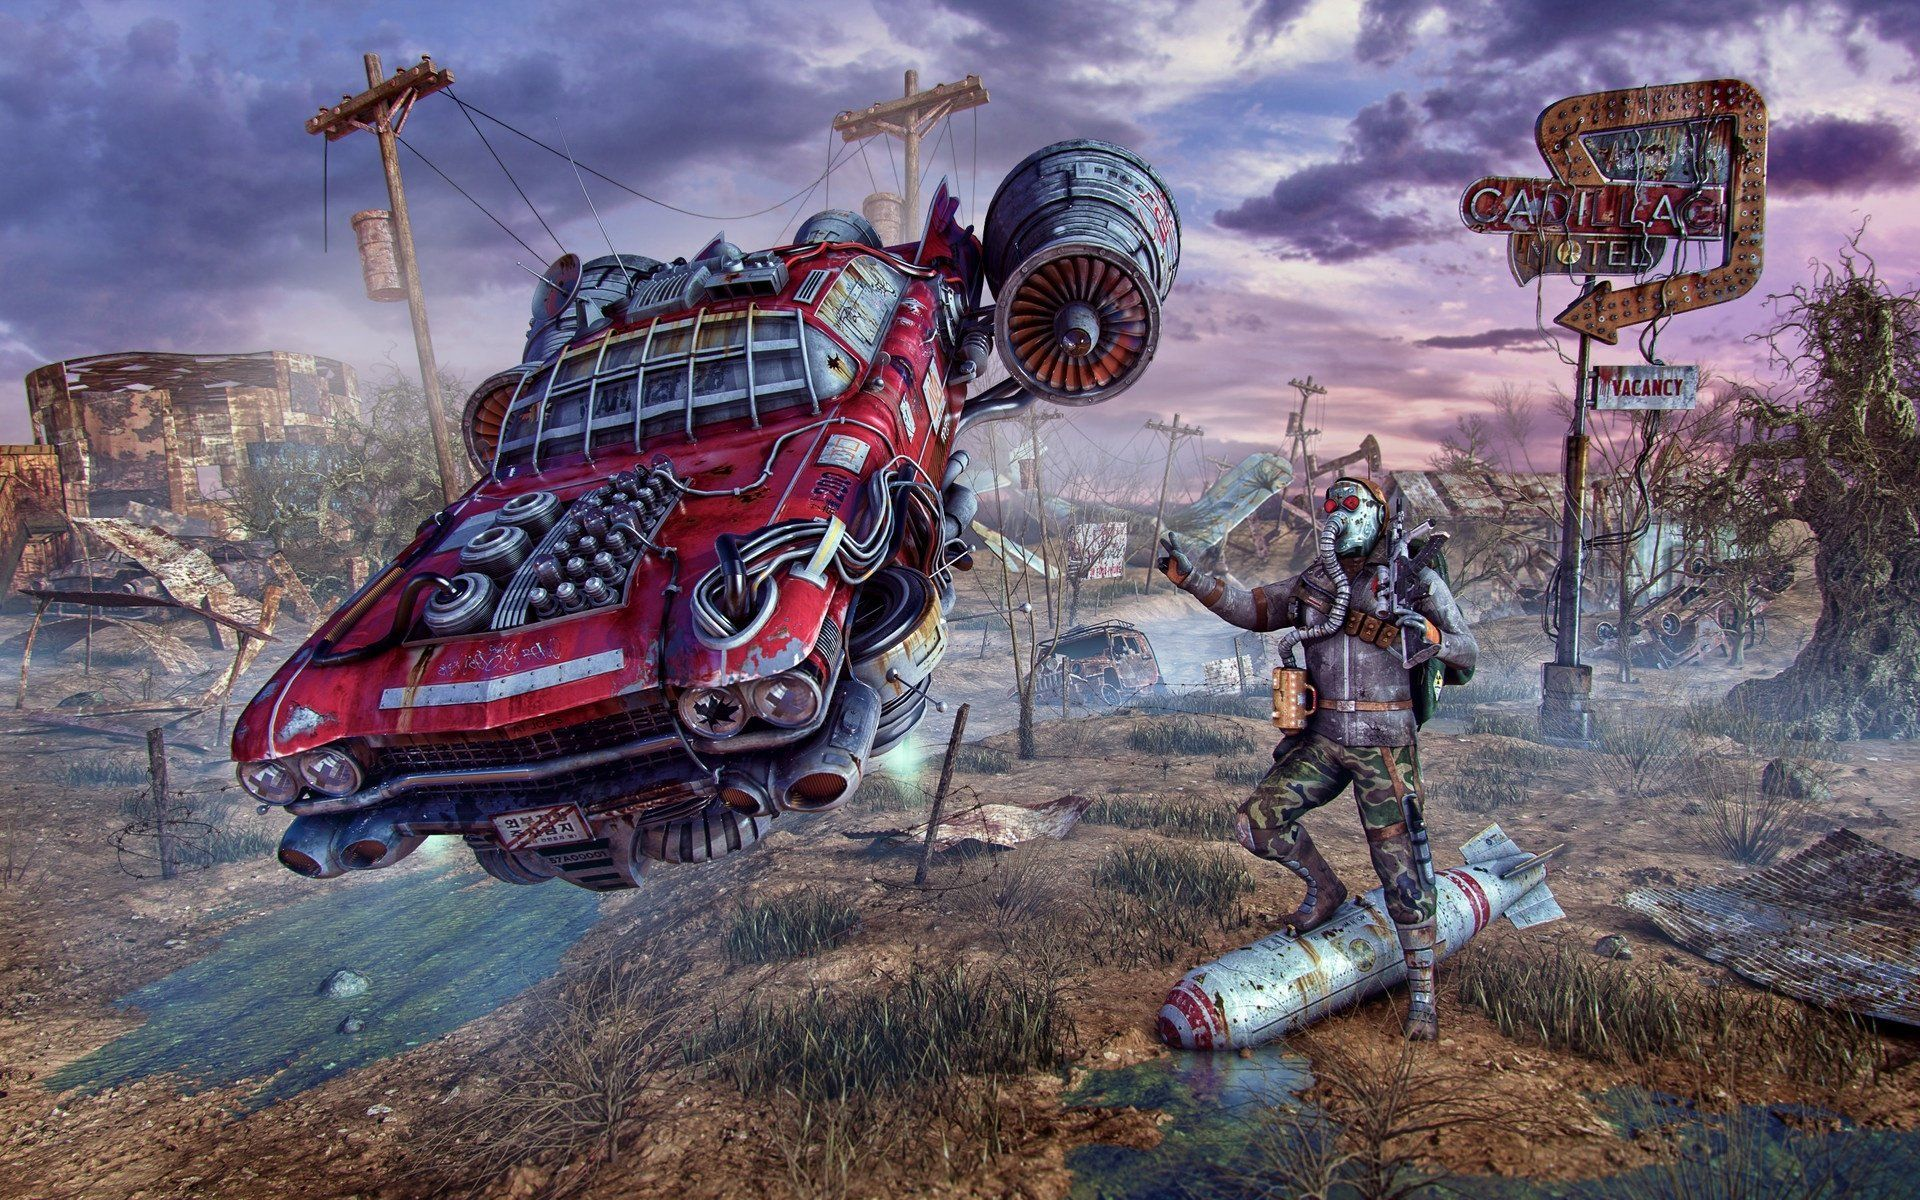 Video Game Fallout Car Post Apocalyptic Man Bomb Wallpaper